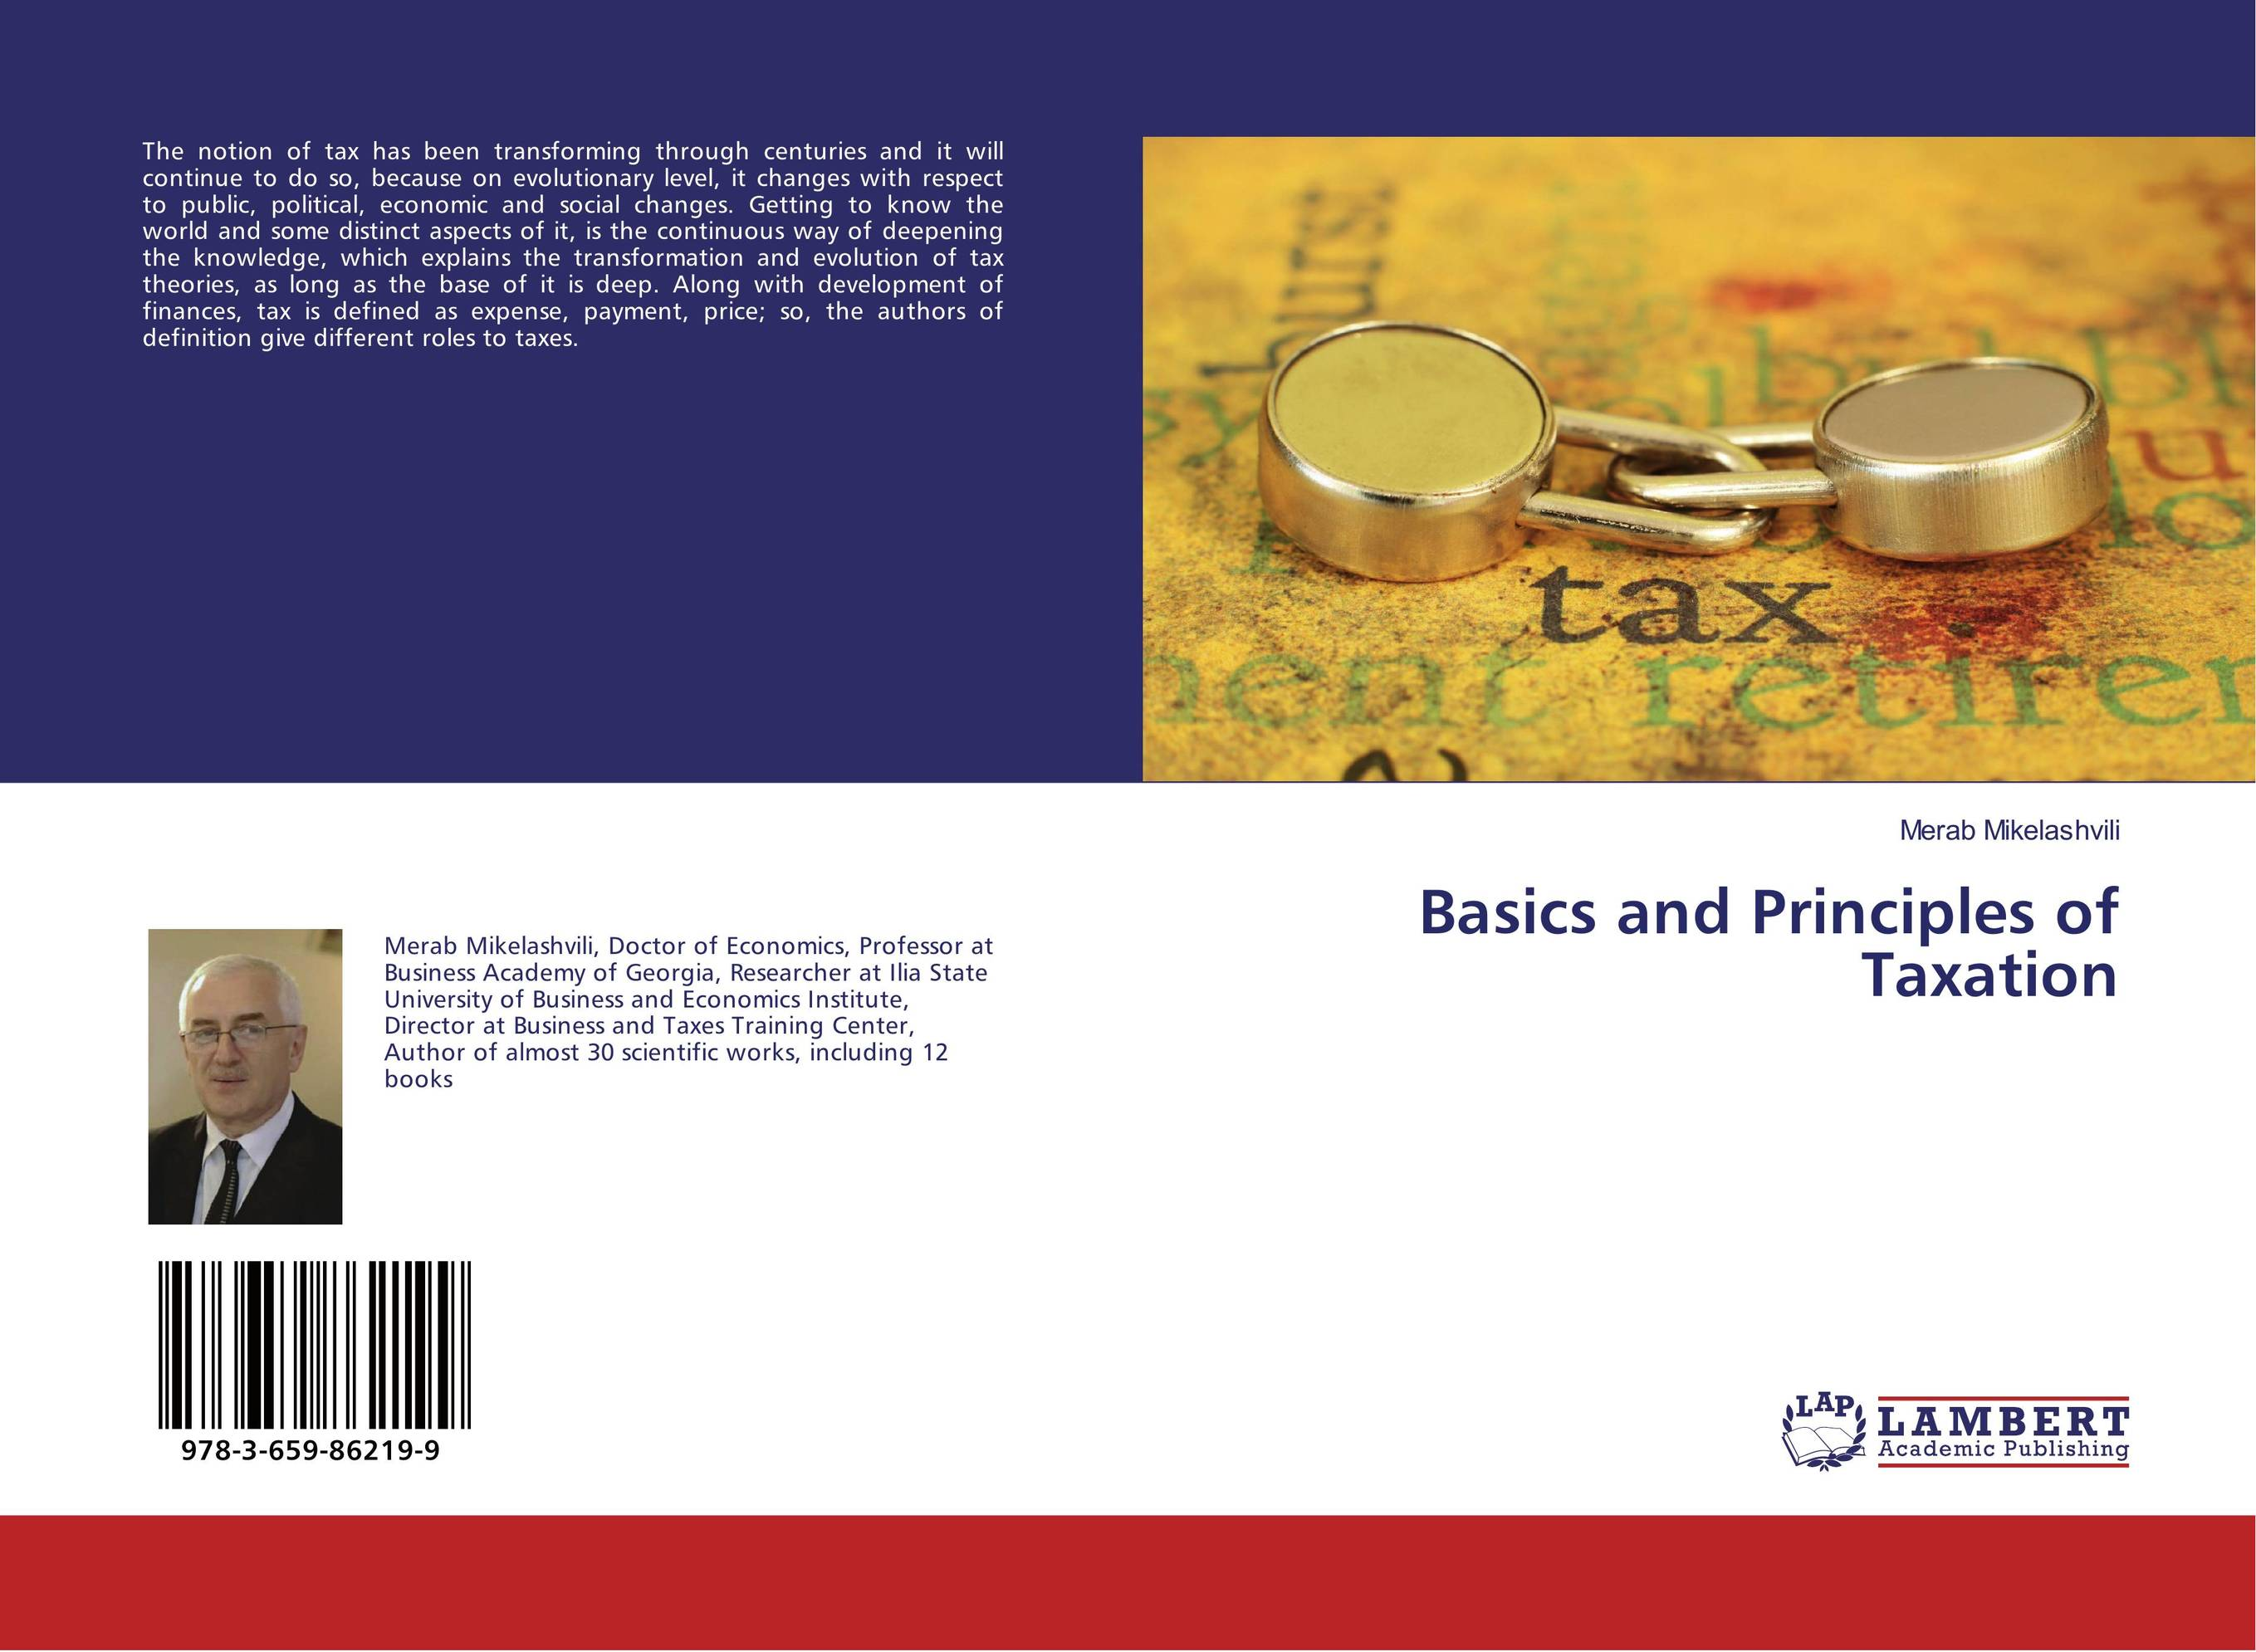 Basics and Principles of Taxation evolution development within big history evolutionary and world system paradigms